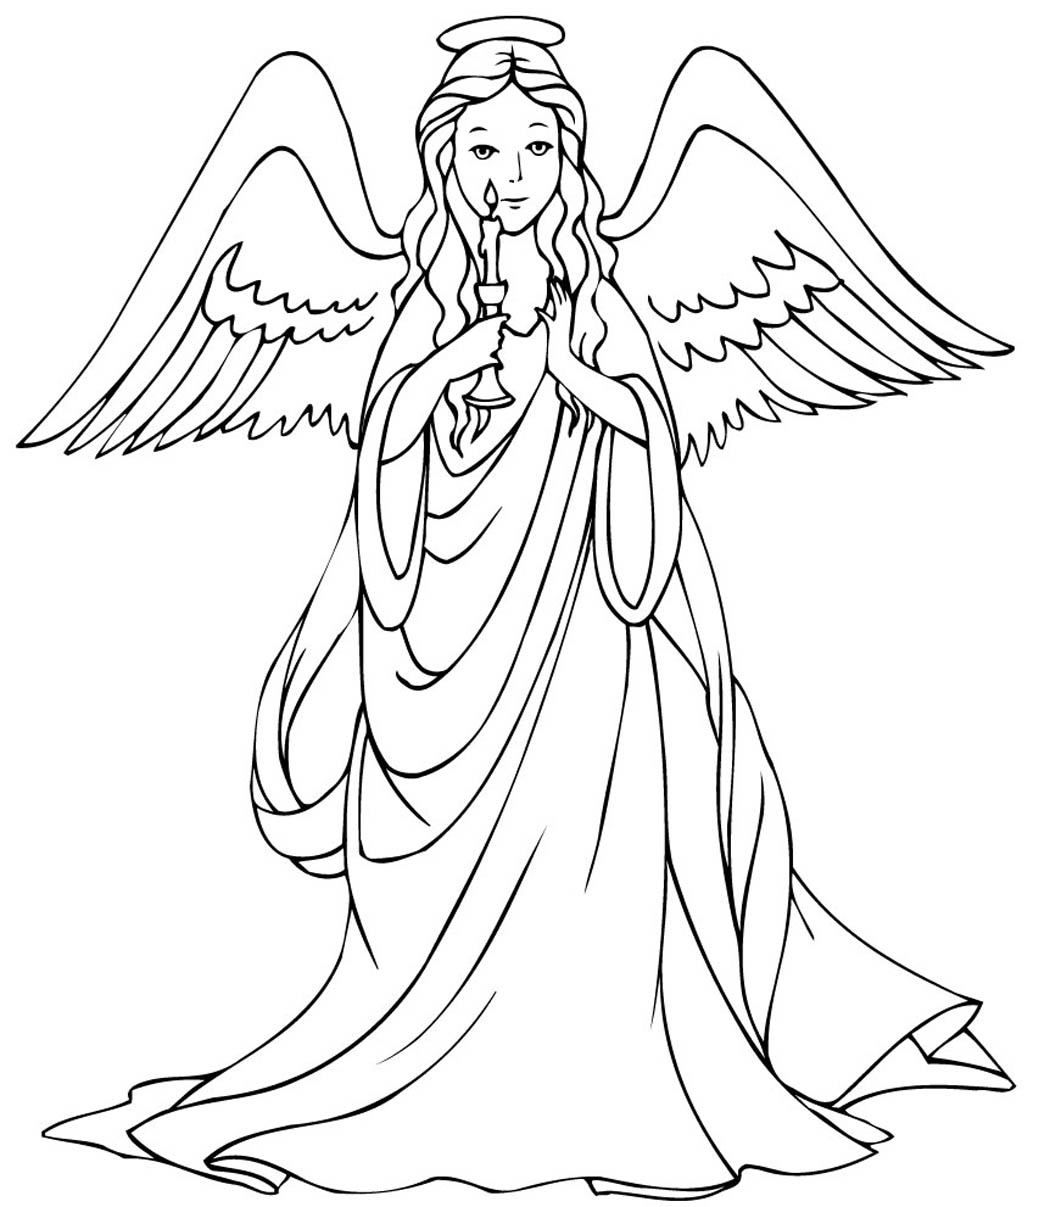 angels worksheets and coloring pages - photo#4